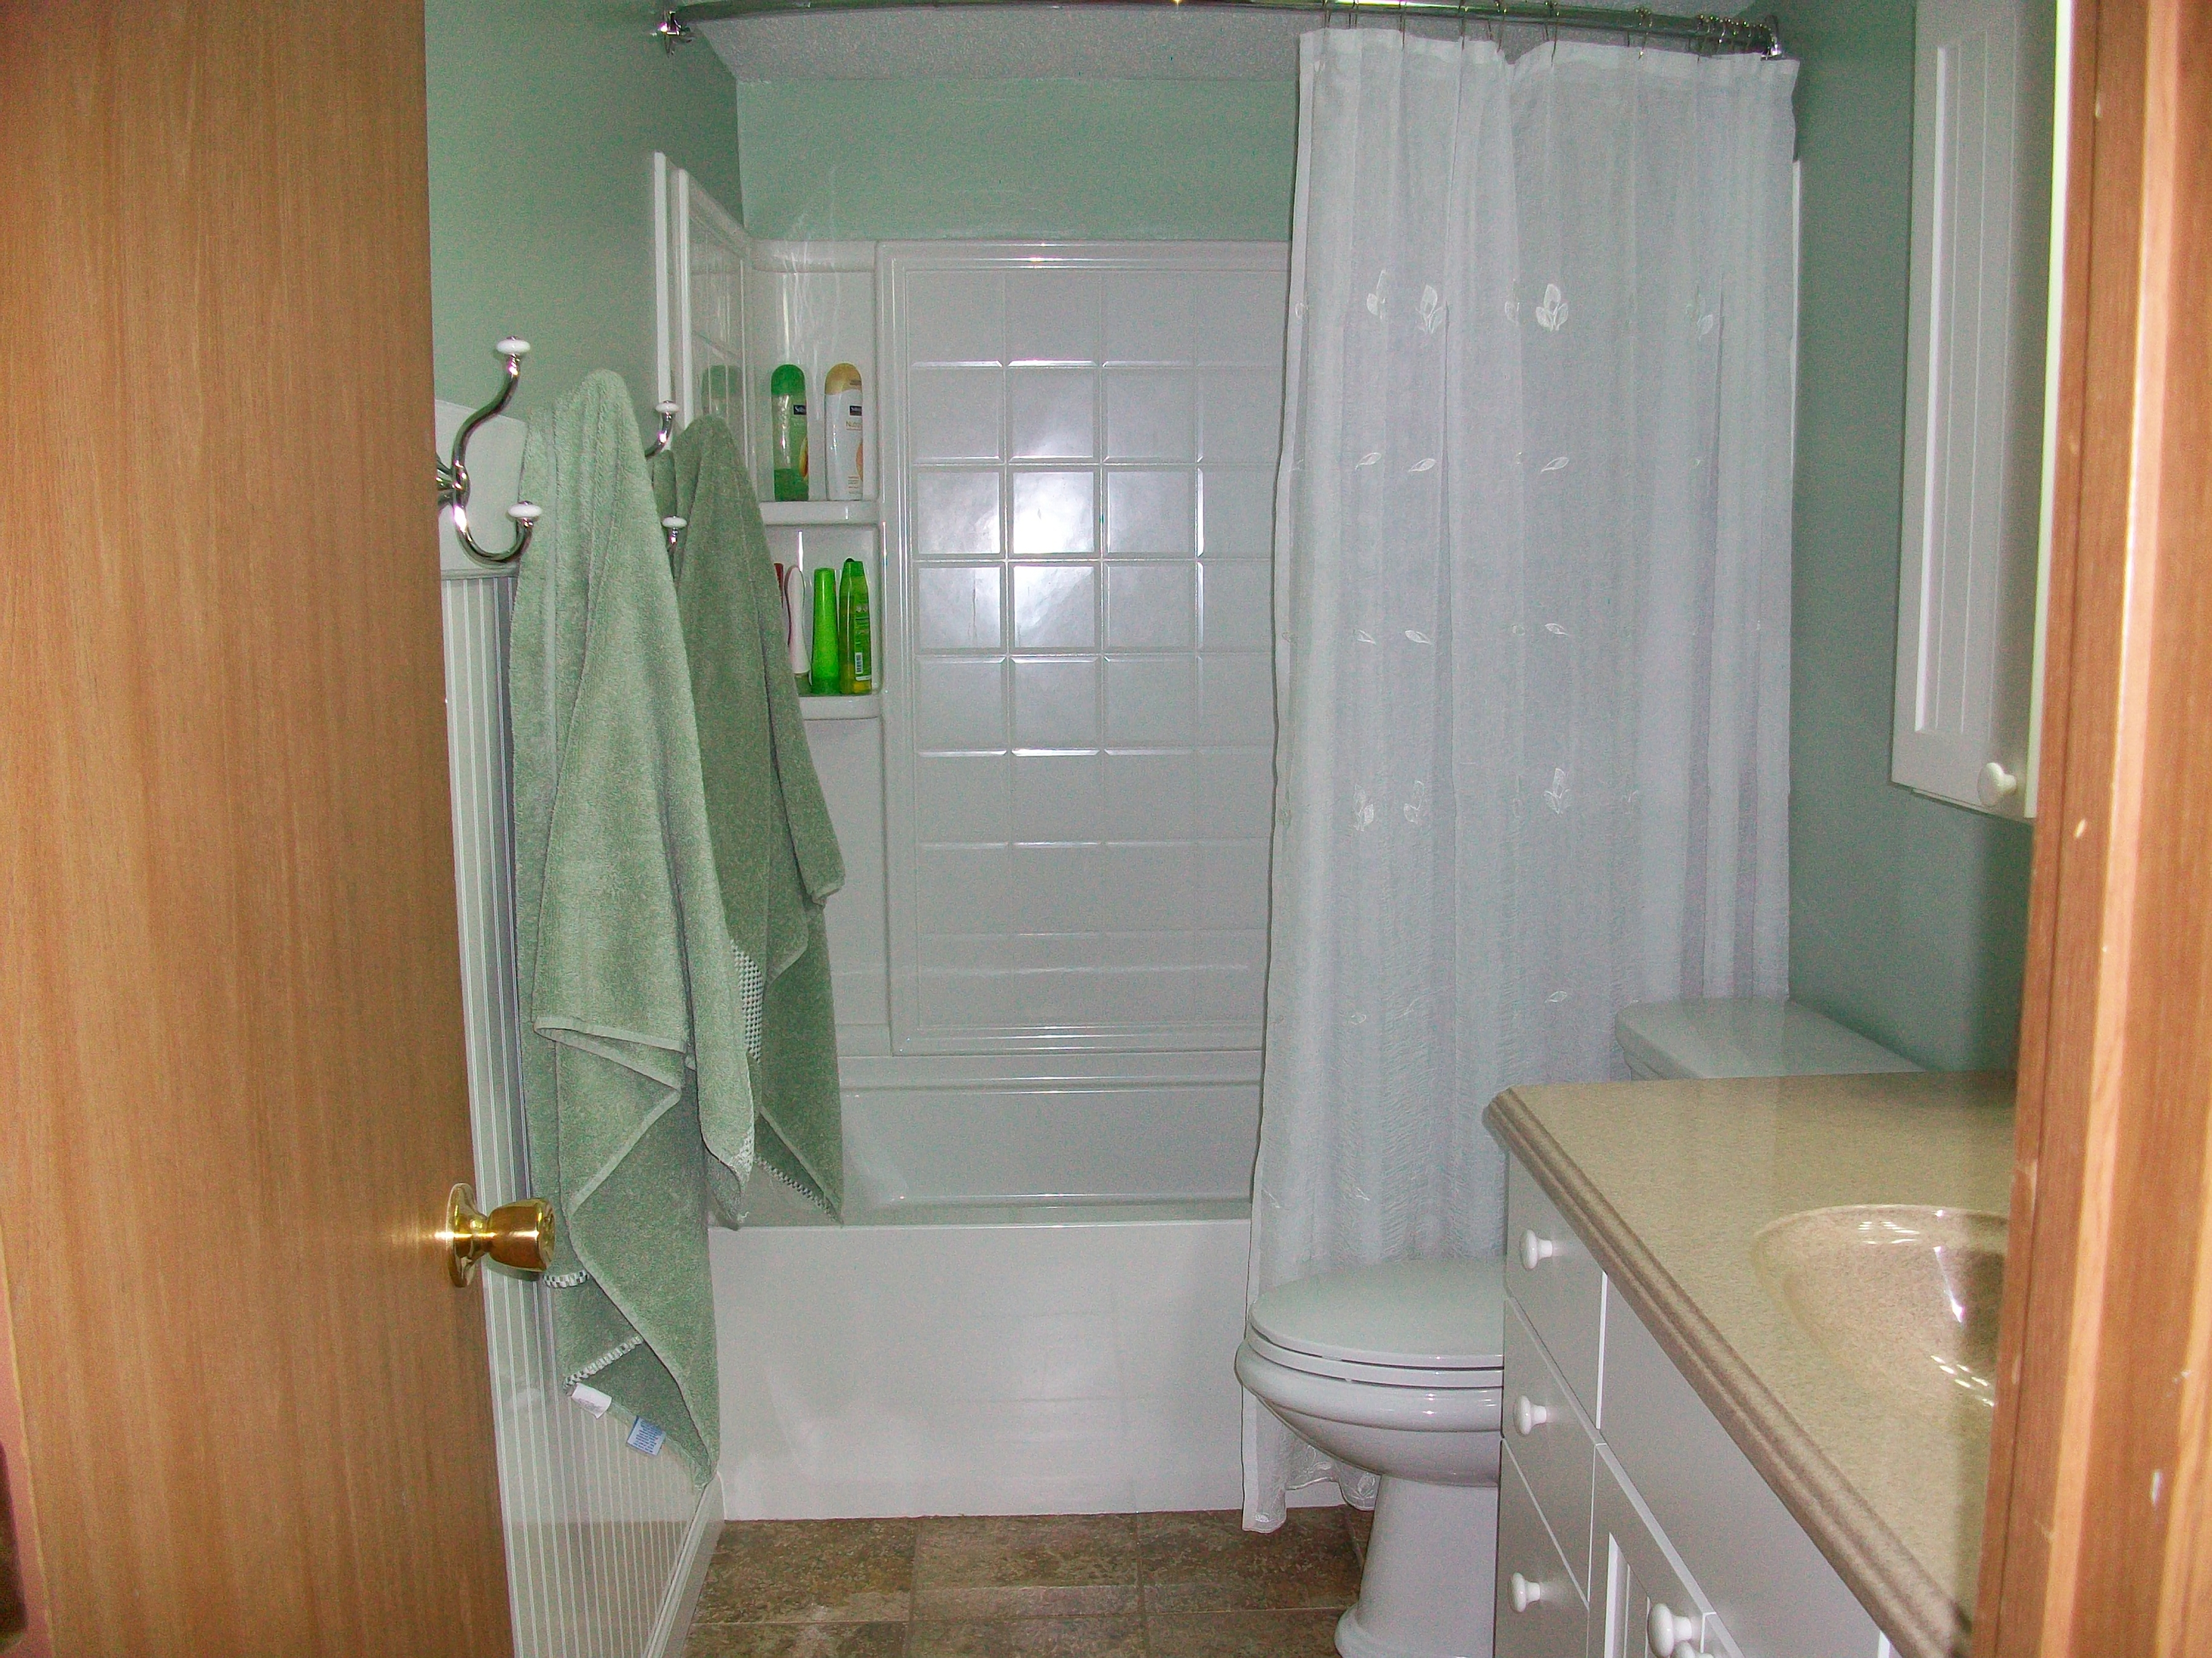 Diy bathroom renovation usa plumbing for Plumbers bathroom renovations